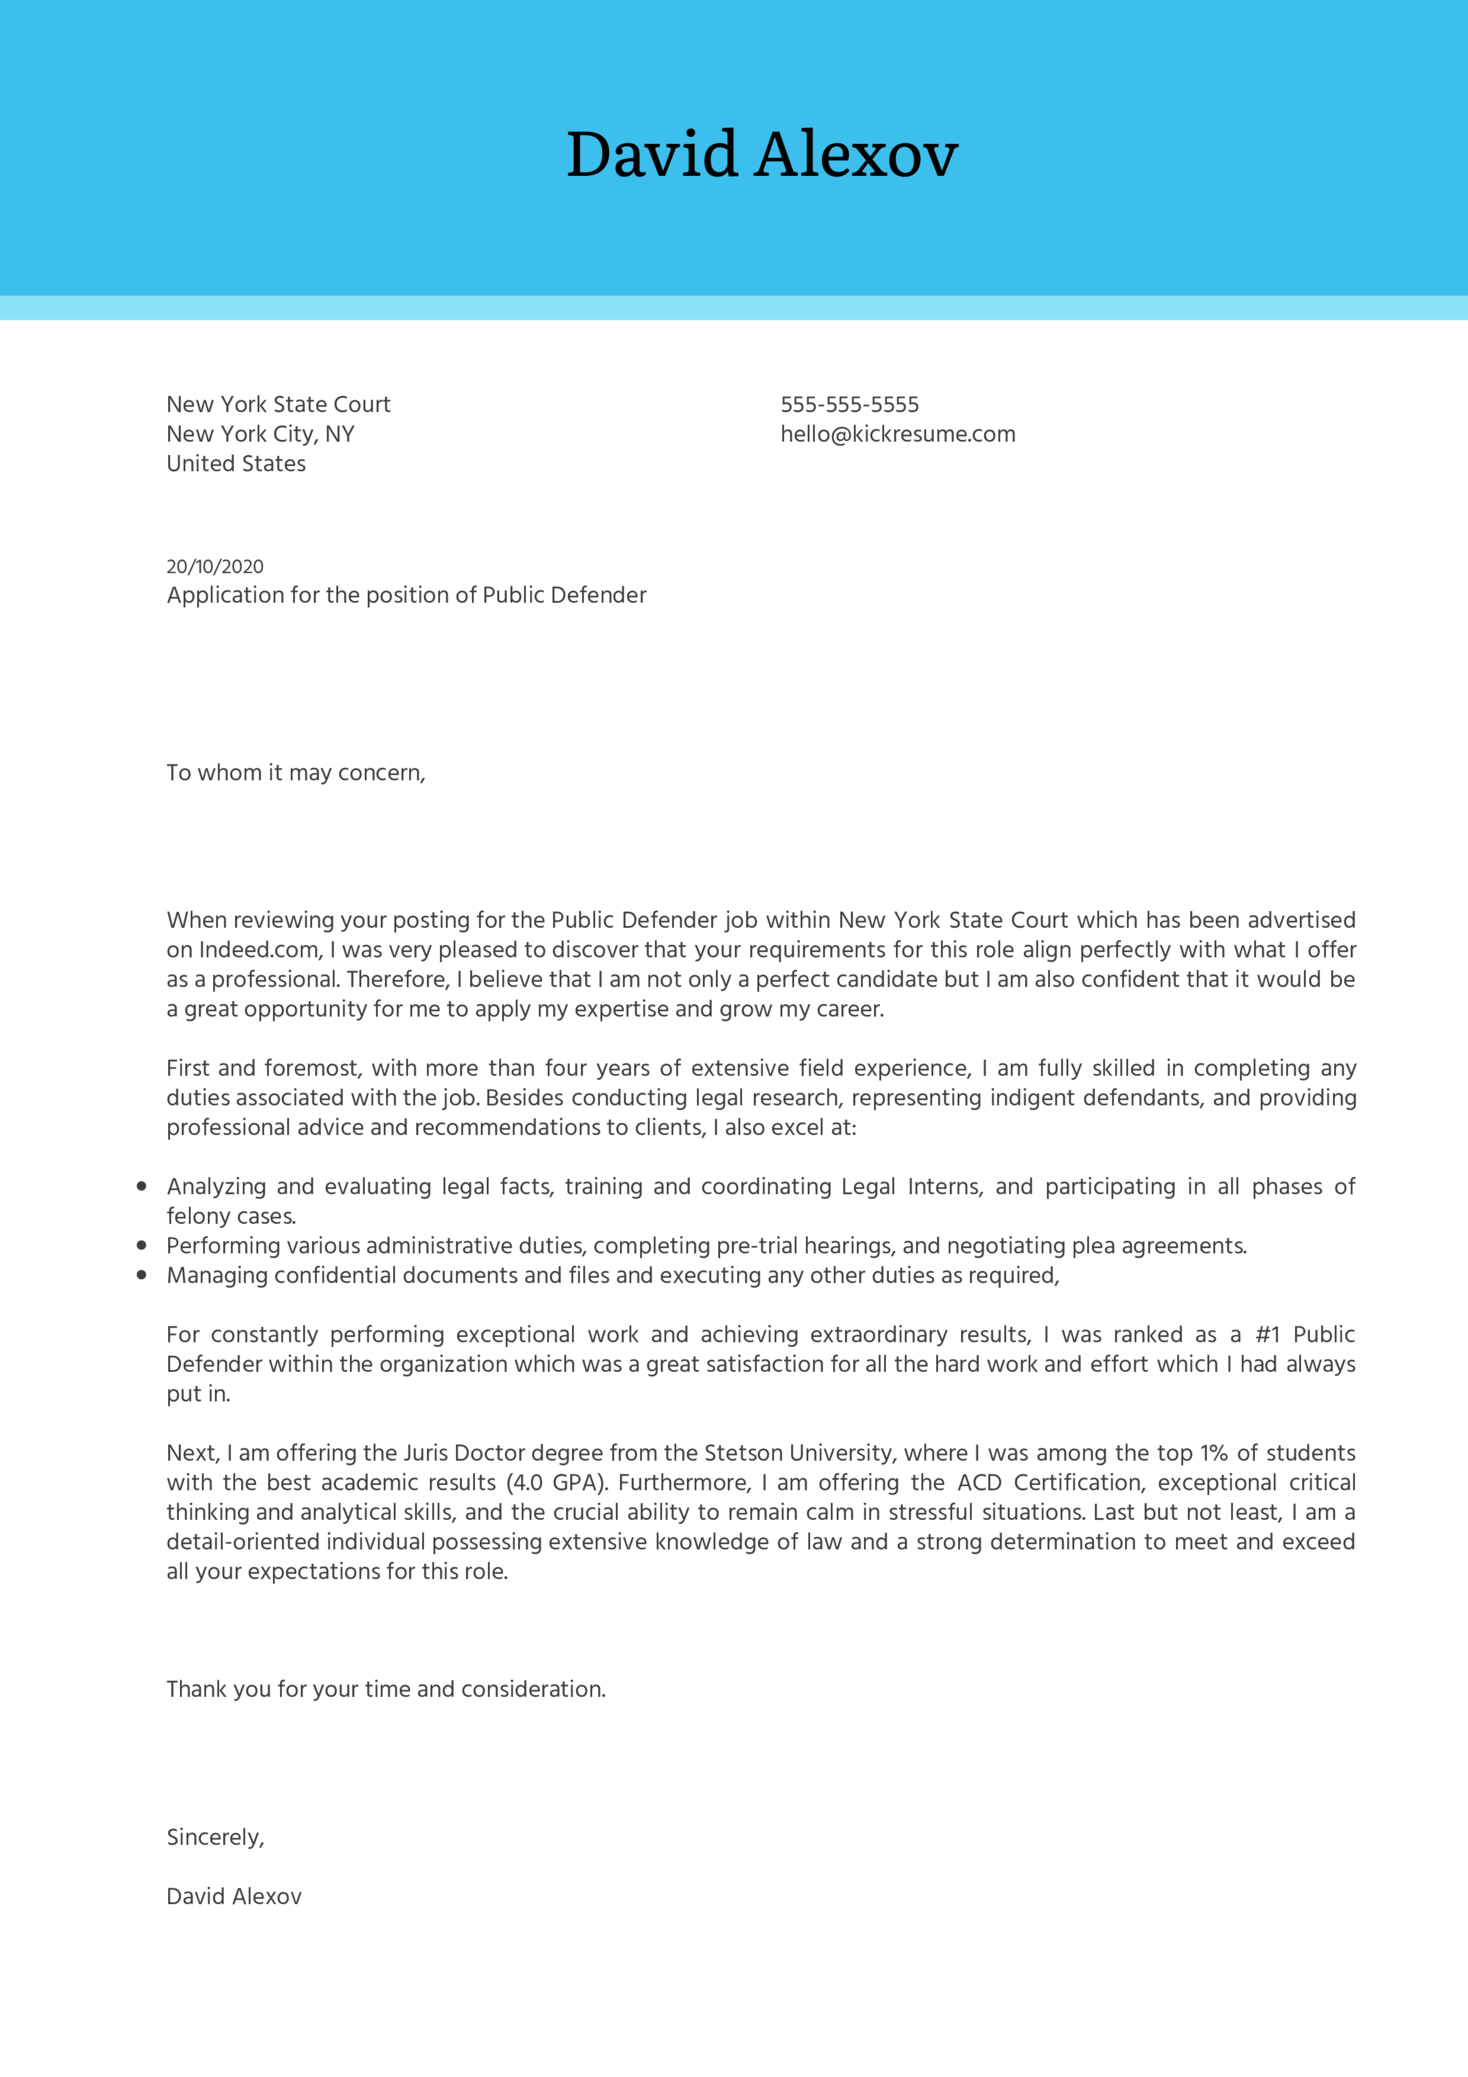 Public Defender Cover Letter Example